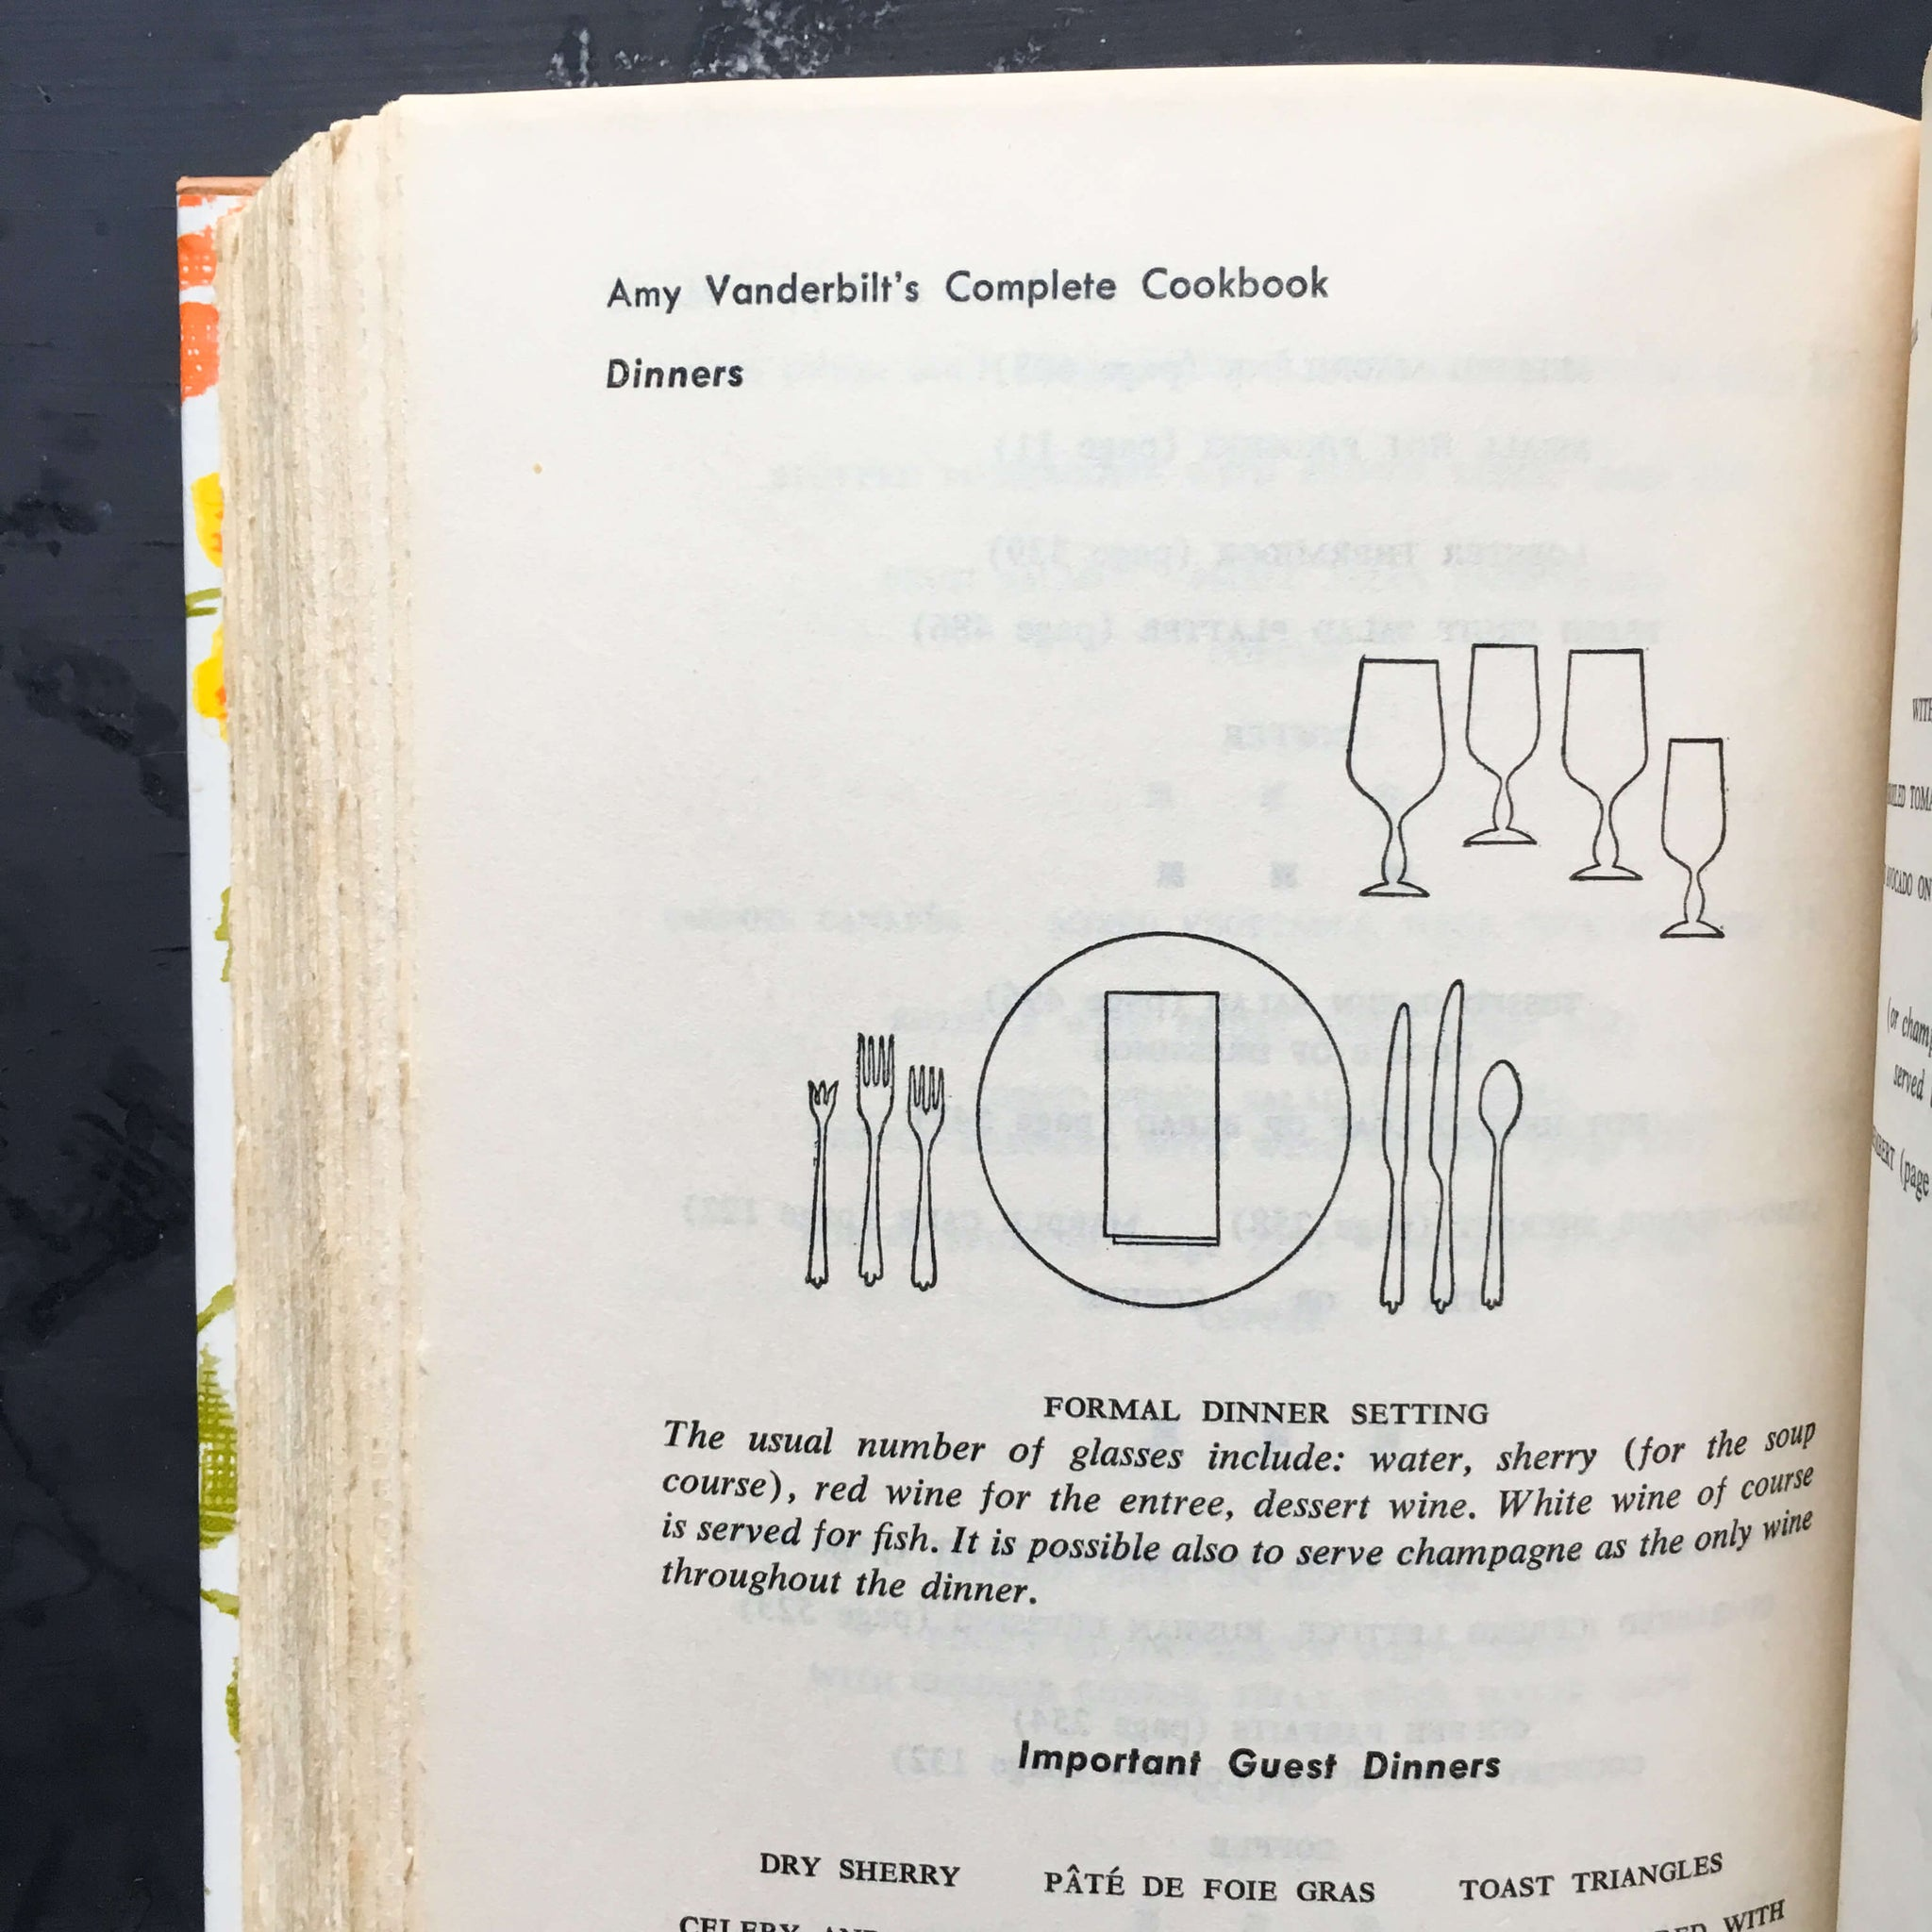 Amy Vanderbilt's Complete Cookbook - 1961 Edition - Drawings by Andy Warhol - Contact Paper Covered Cookbook